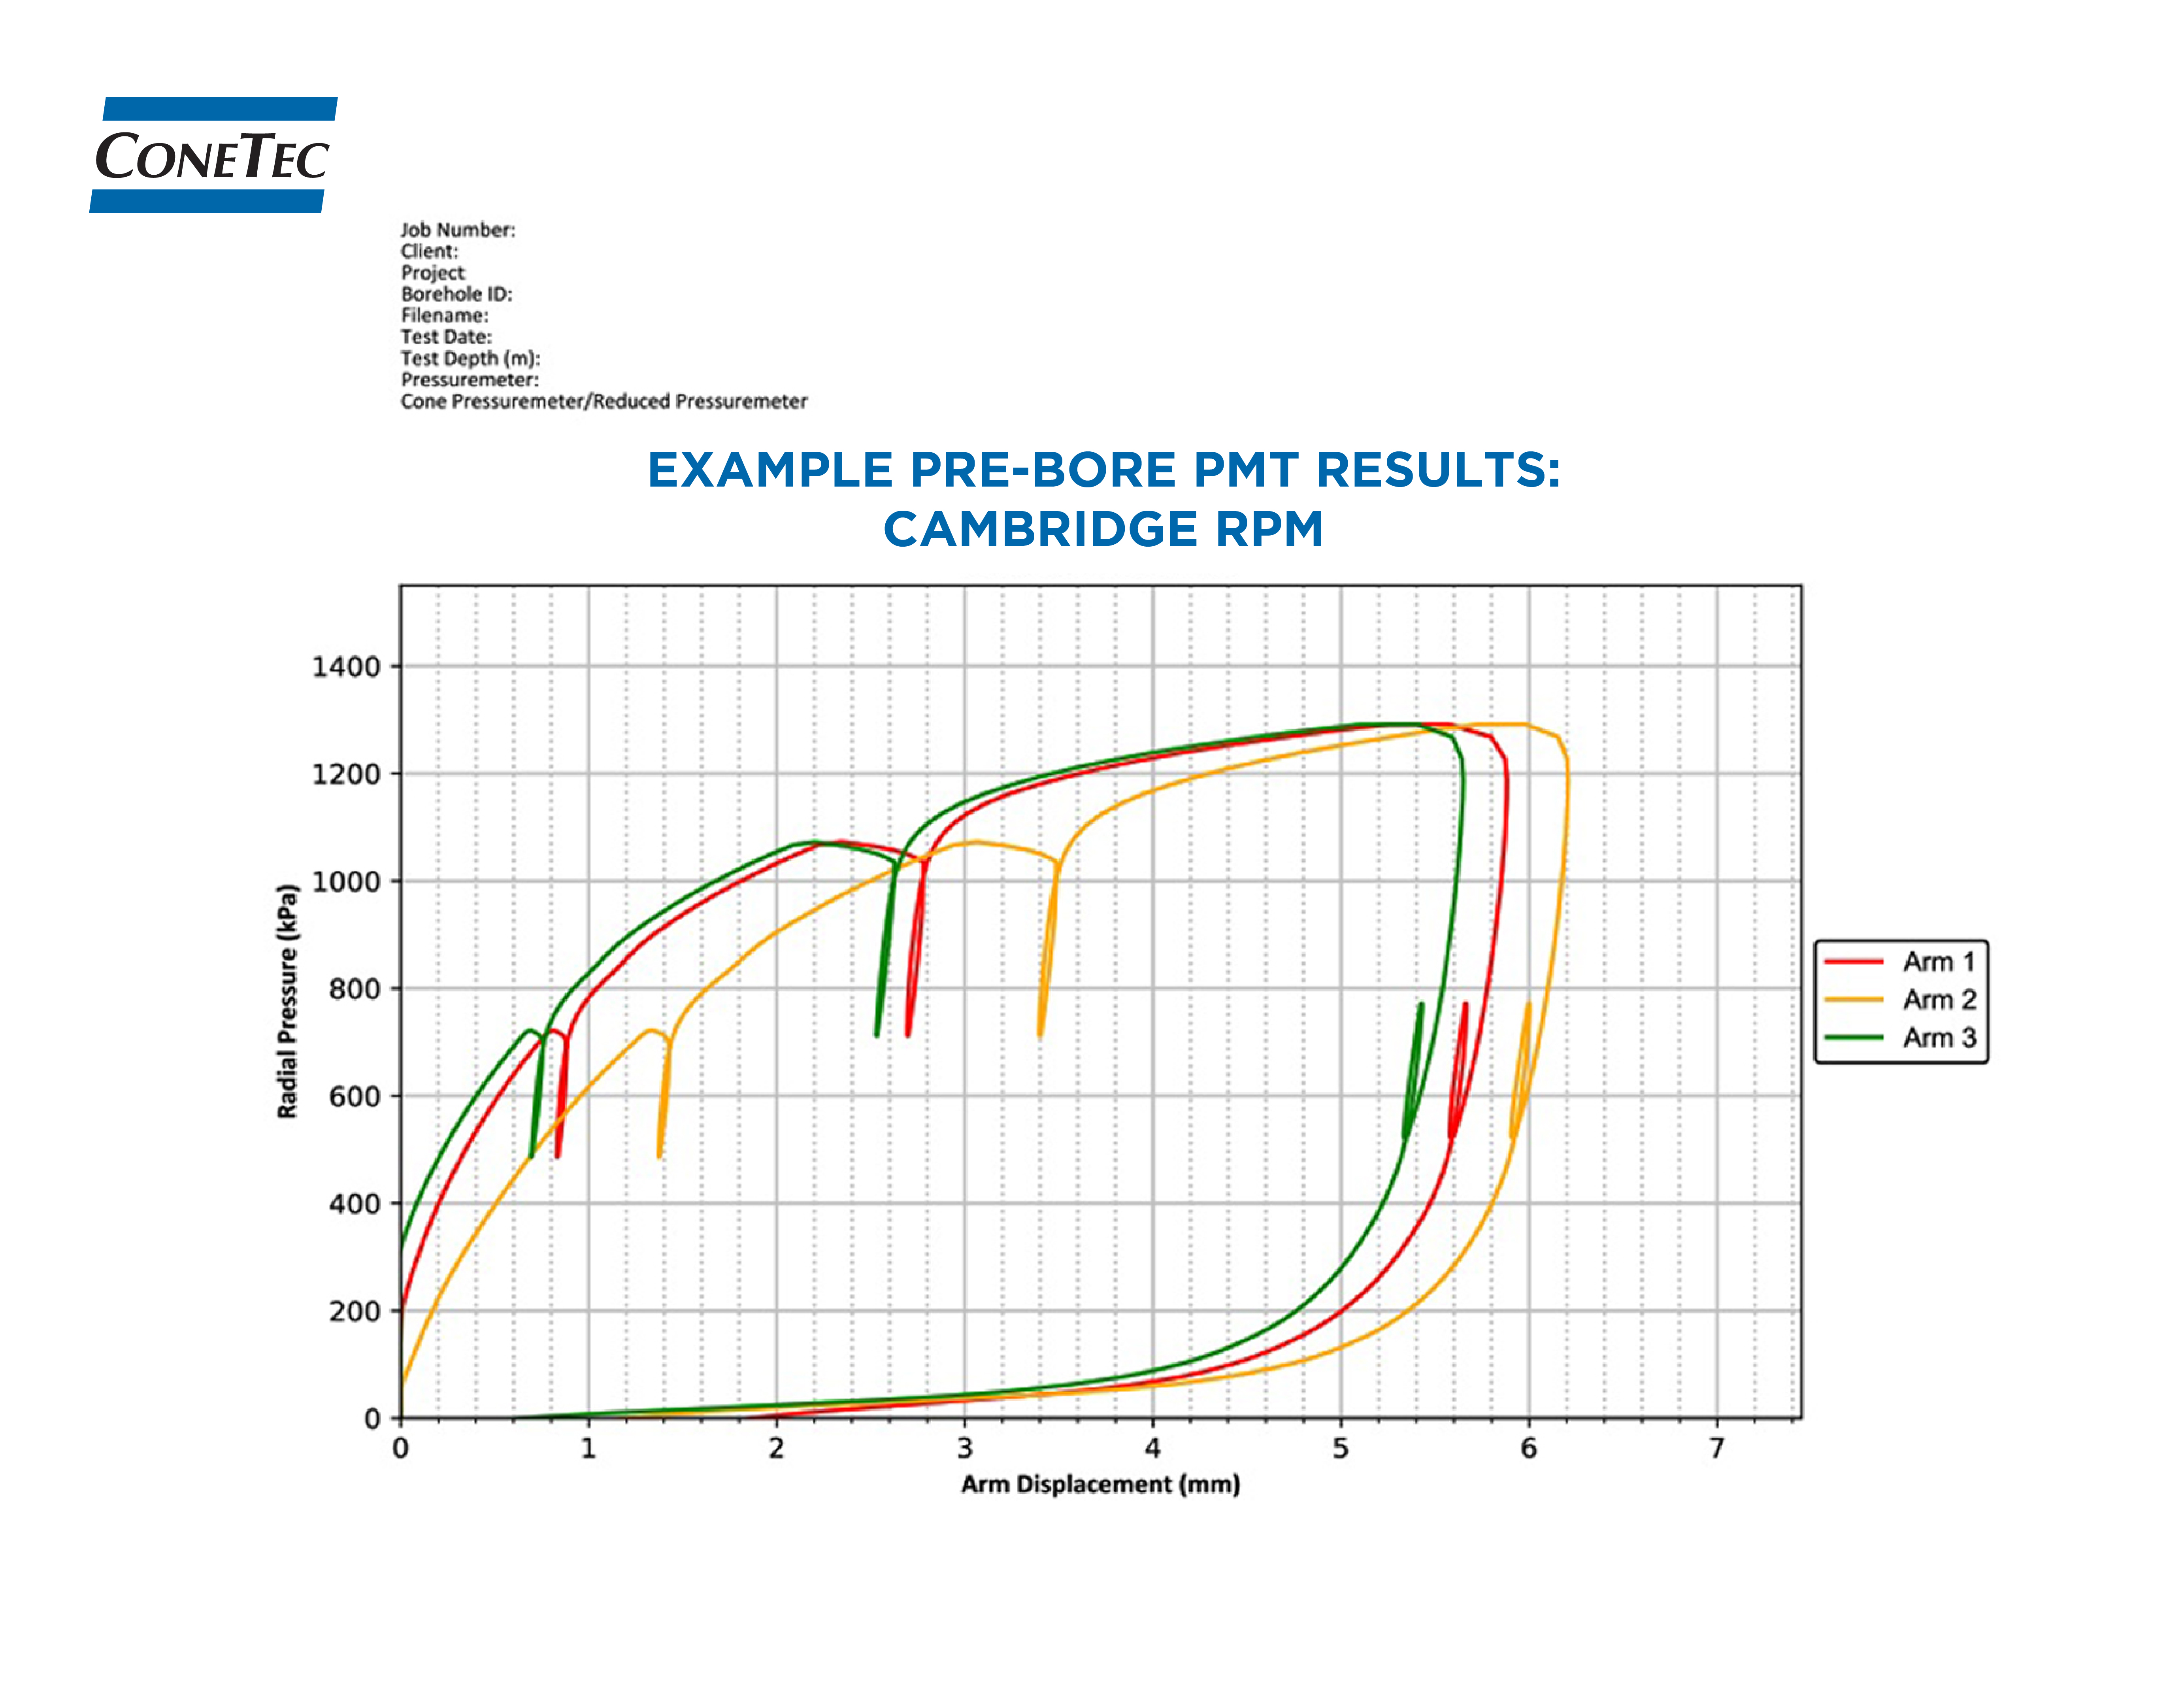 Figures and Data 3 - Example Pre-Bore PMT Results - Cambridge RPM-01-01-03.jpg